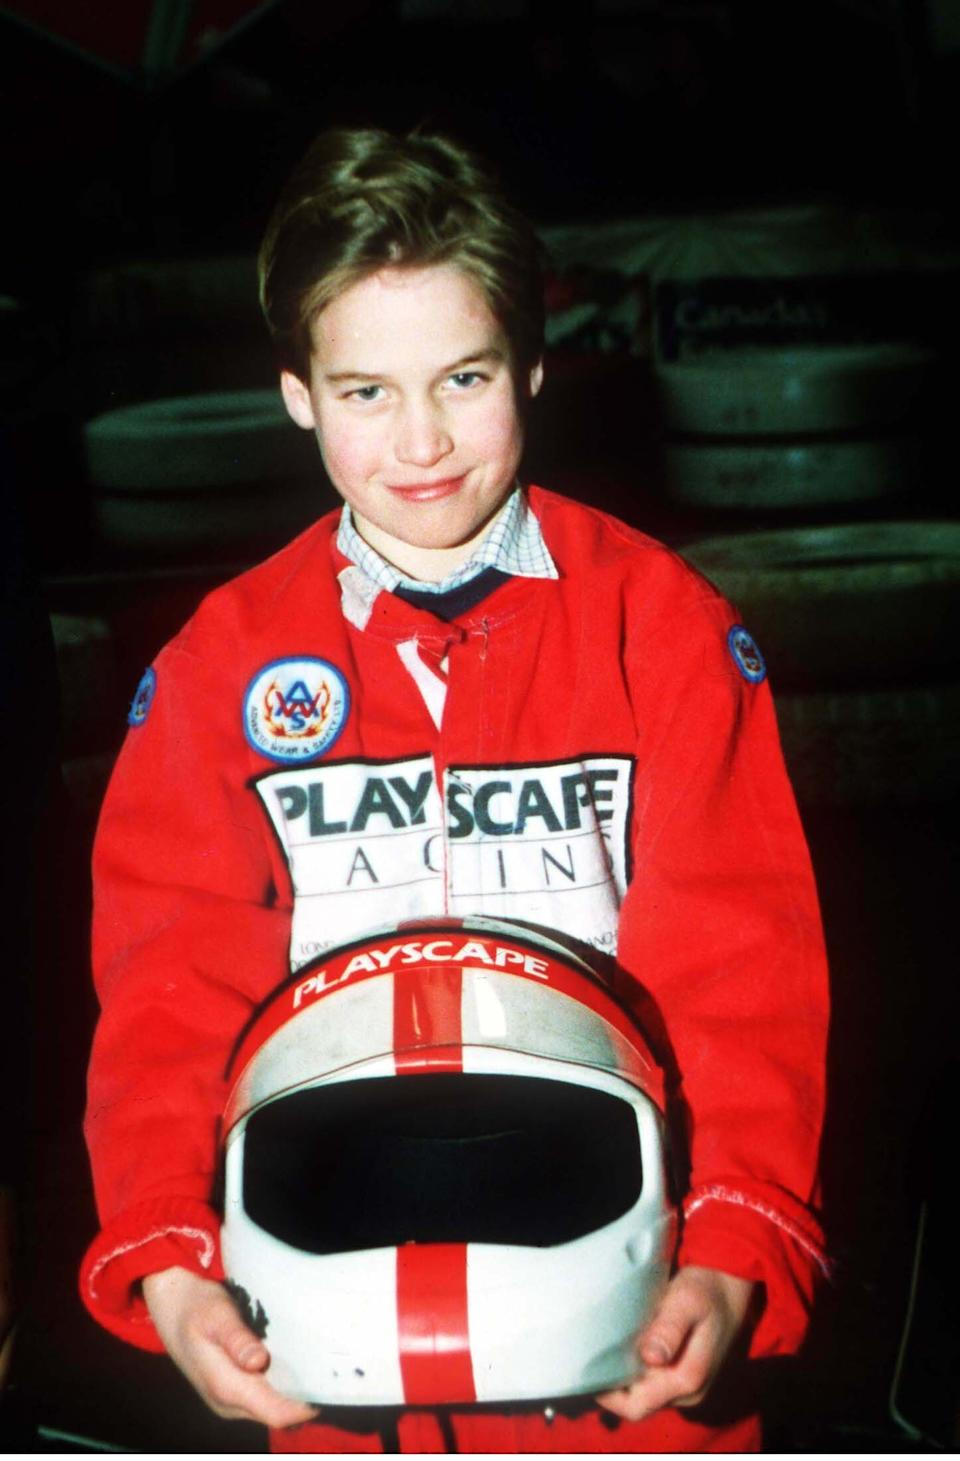 <p>Prince William go-karting at the British Grand Prix in July 1988, an image many use to draw comparisons with his daughter Charlotte. (Anwar Hussein)</p>